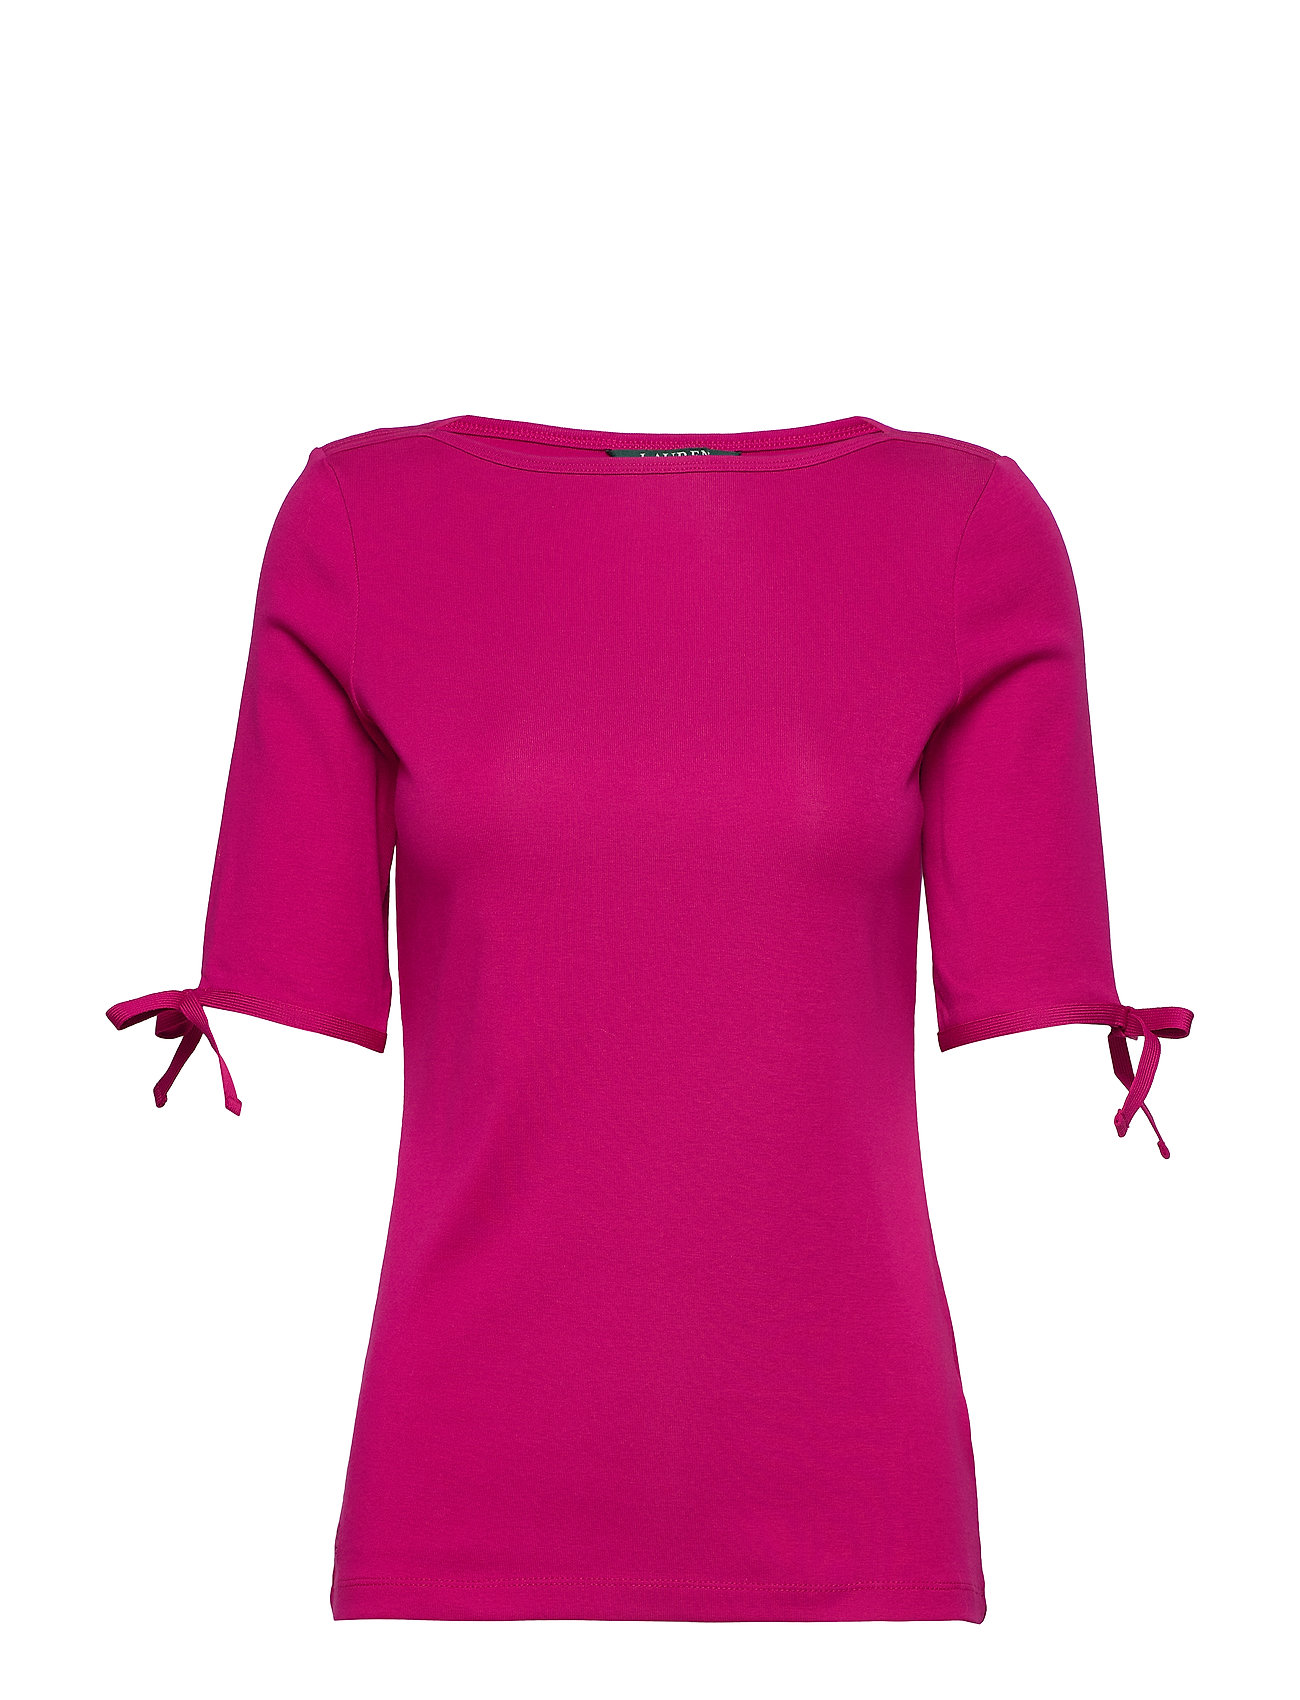 Lauren Ralph Lauren Cotton-Blend Boatneck Top - BRIGHT FUCHSIA